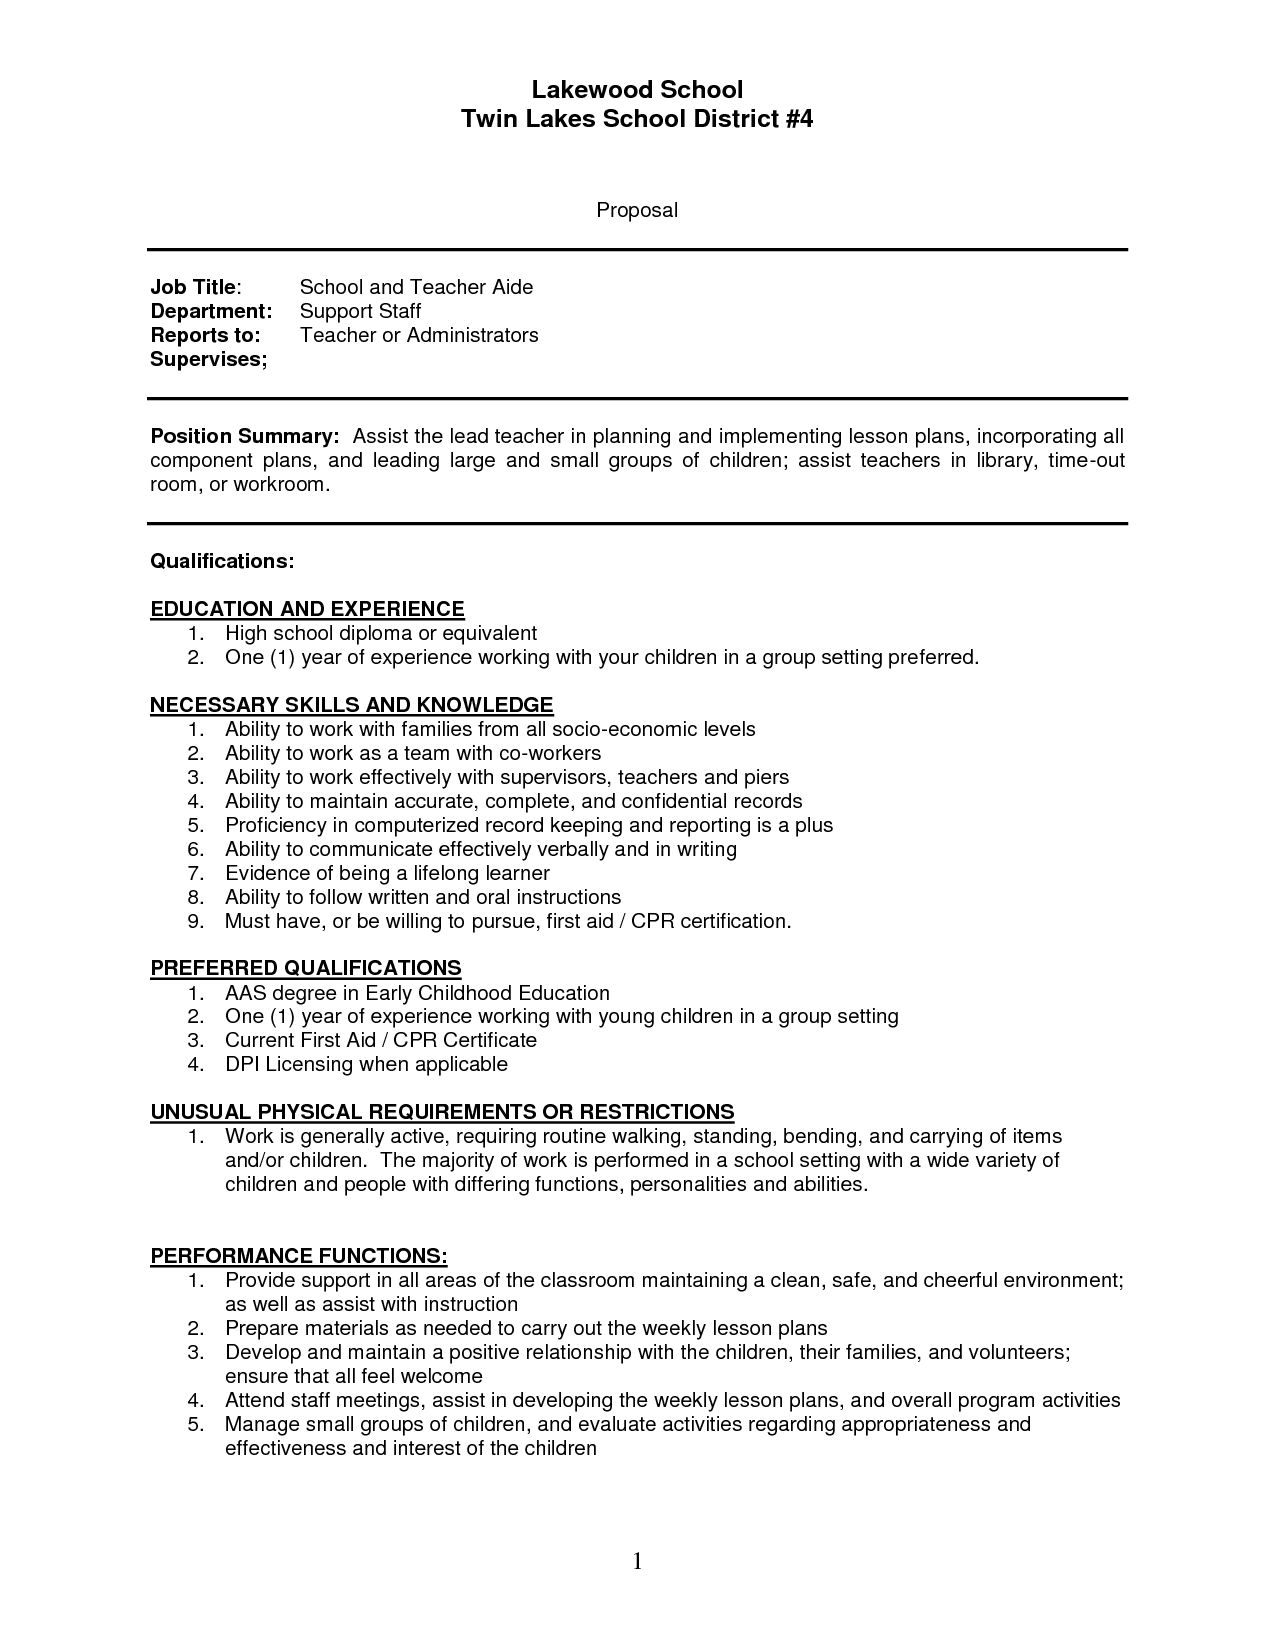 Teacher assistant Resume with No Experience - Sample Resume Teachers Aide assistant Cover Letter Teacher Sap